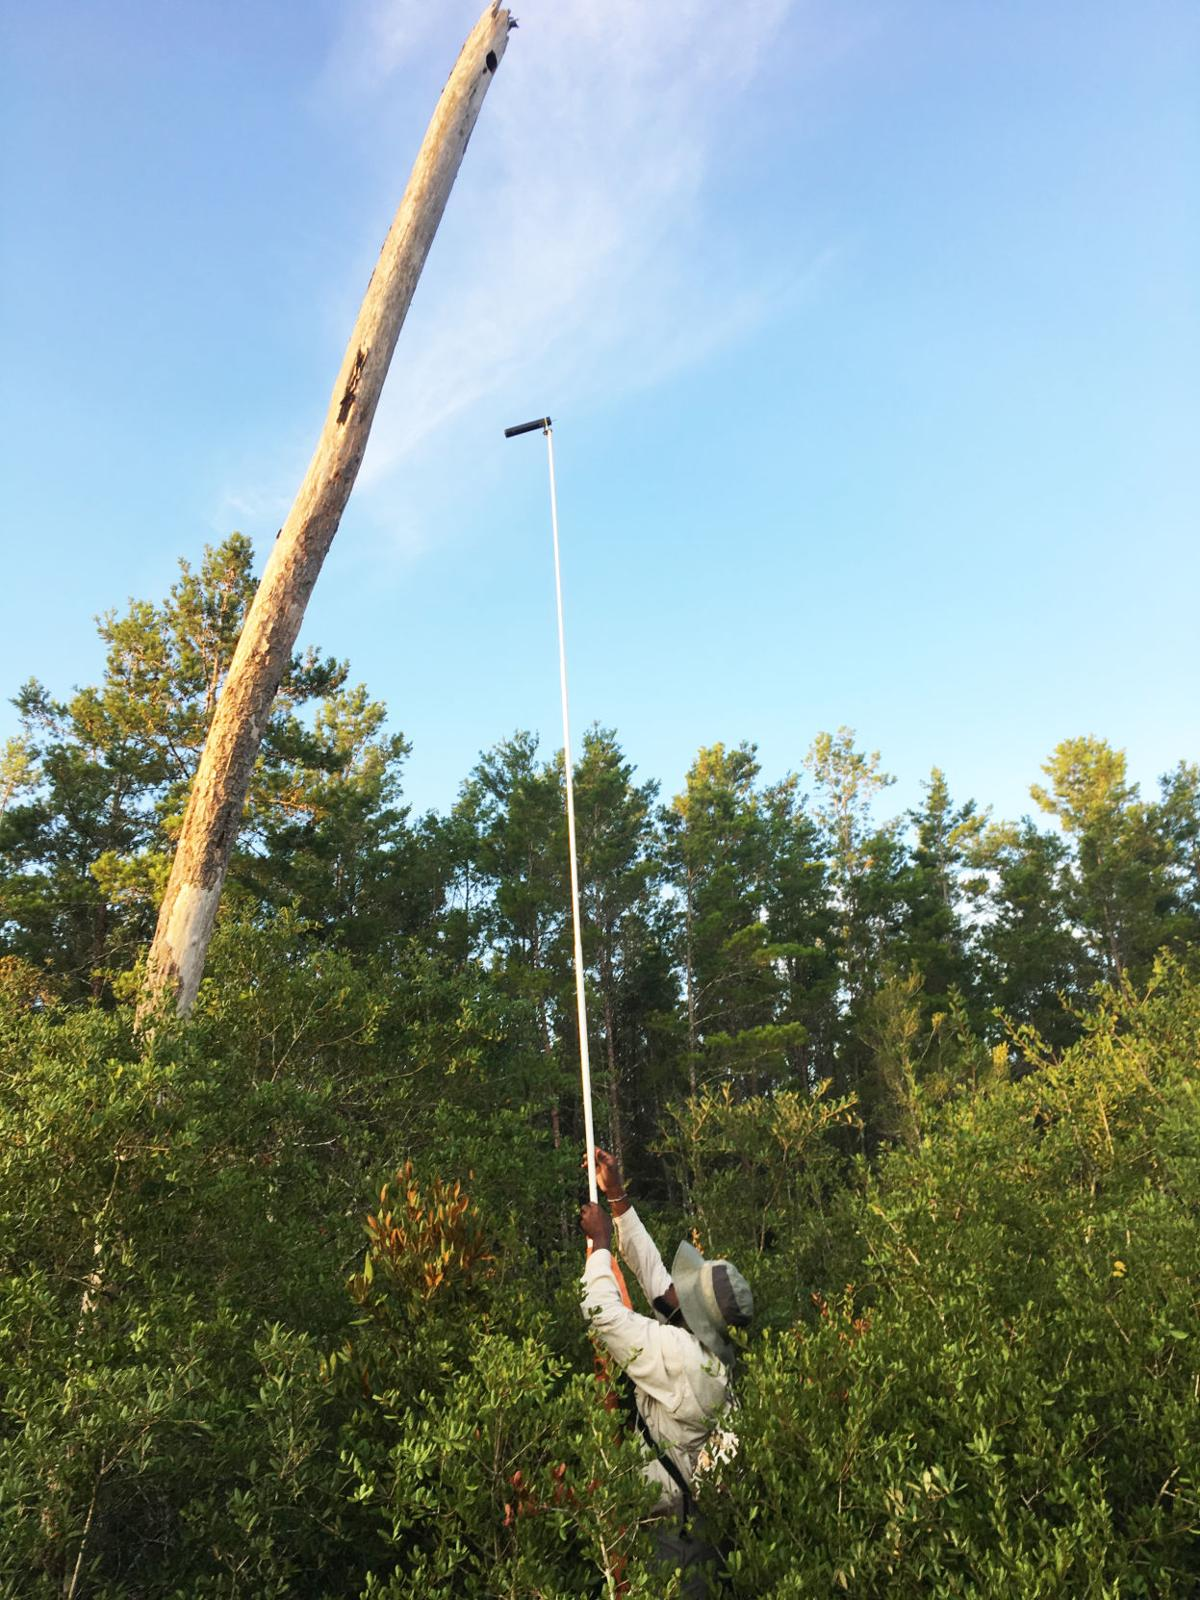 Homestead native and University of Florida student Herby Zephir in the field studying falcons and conservation.